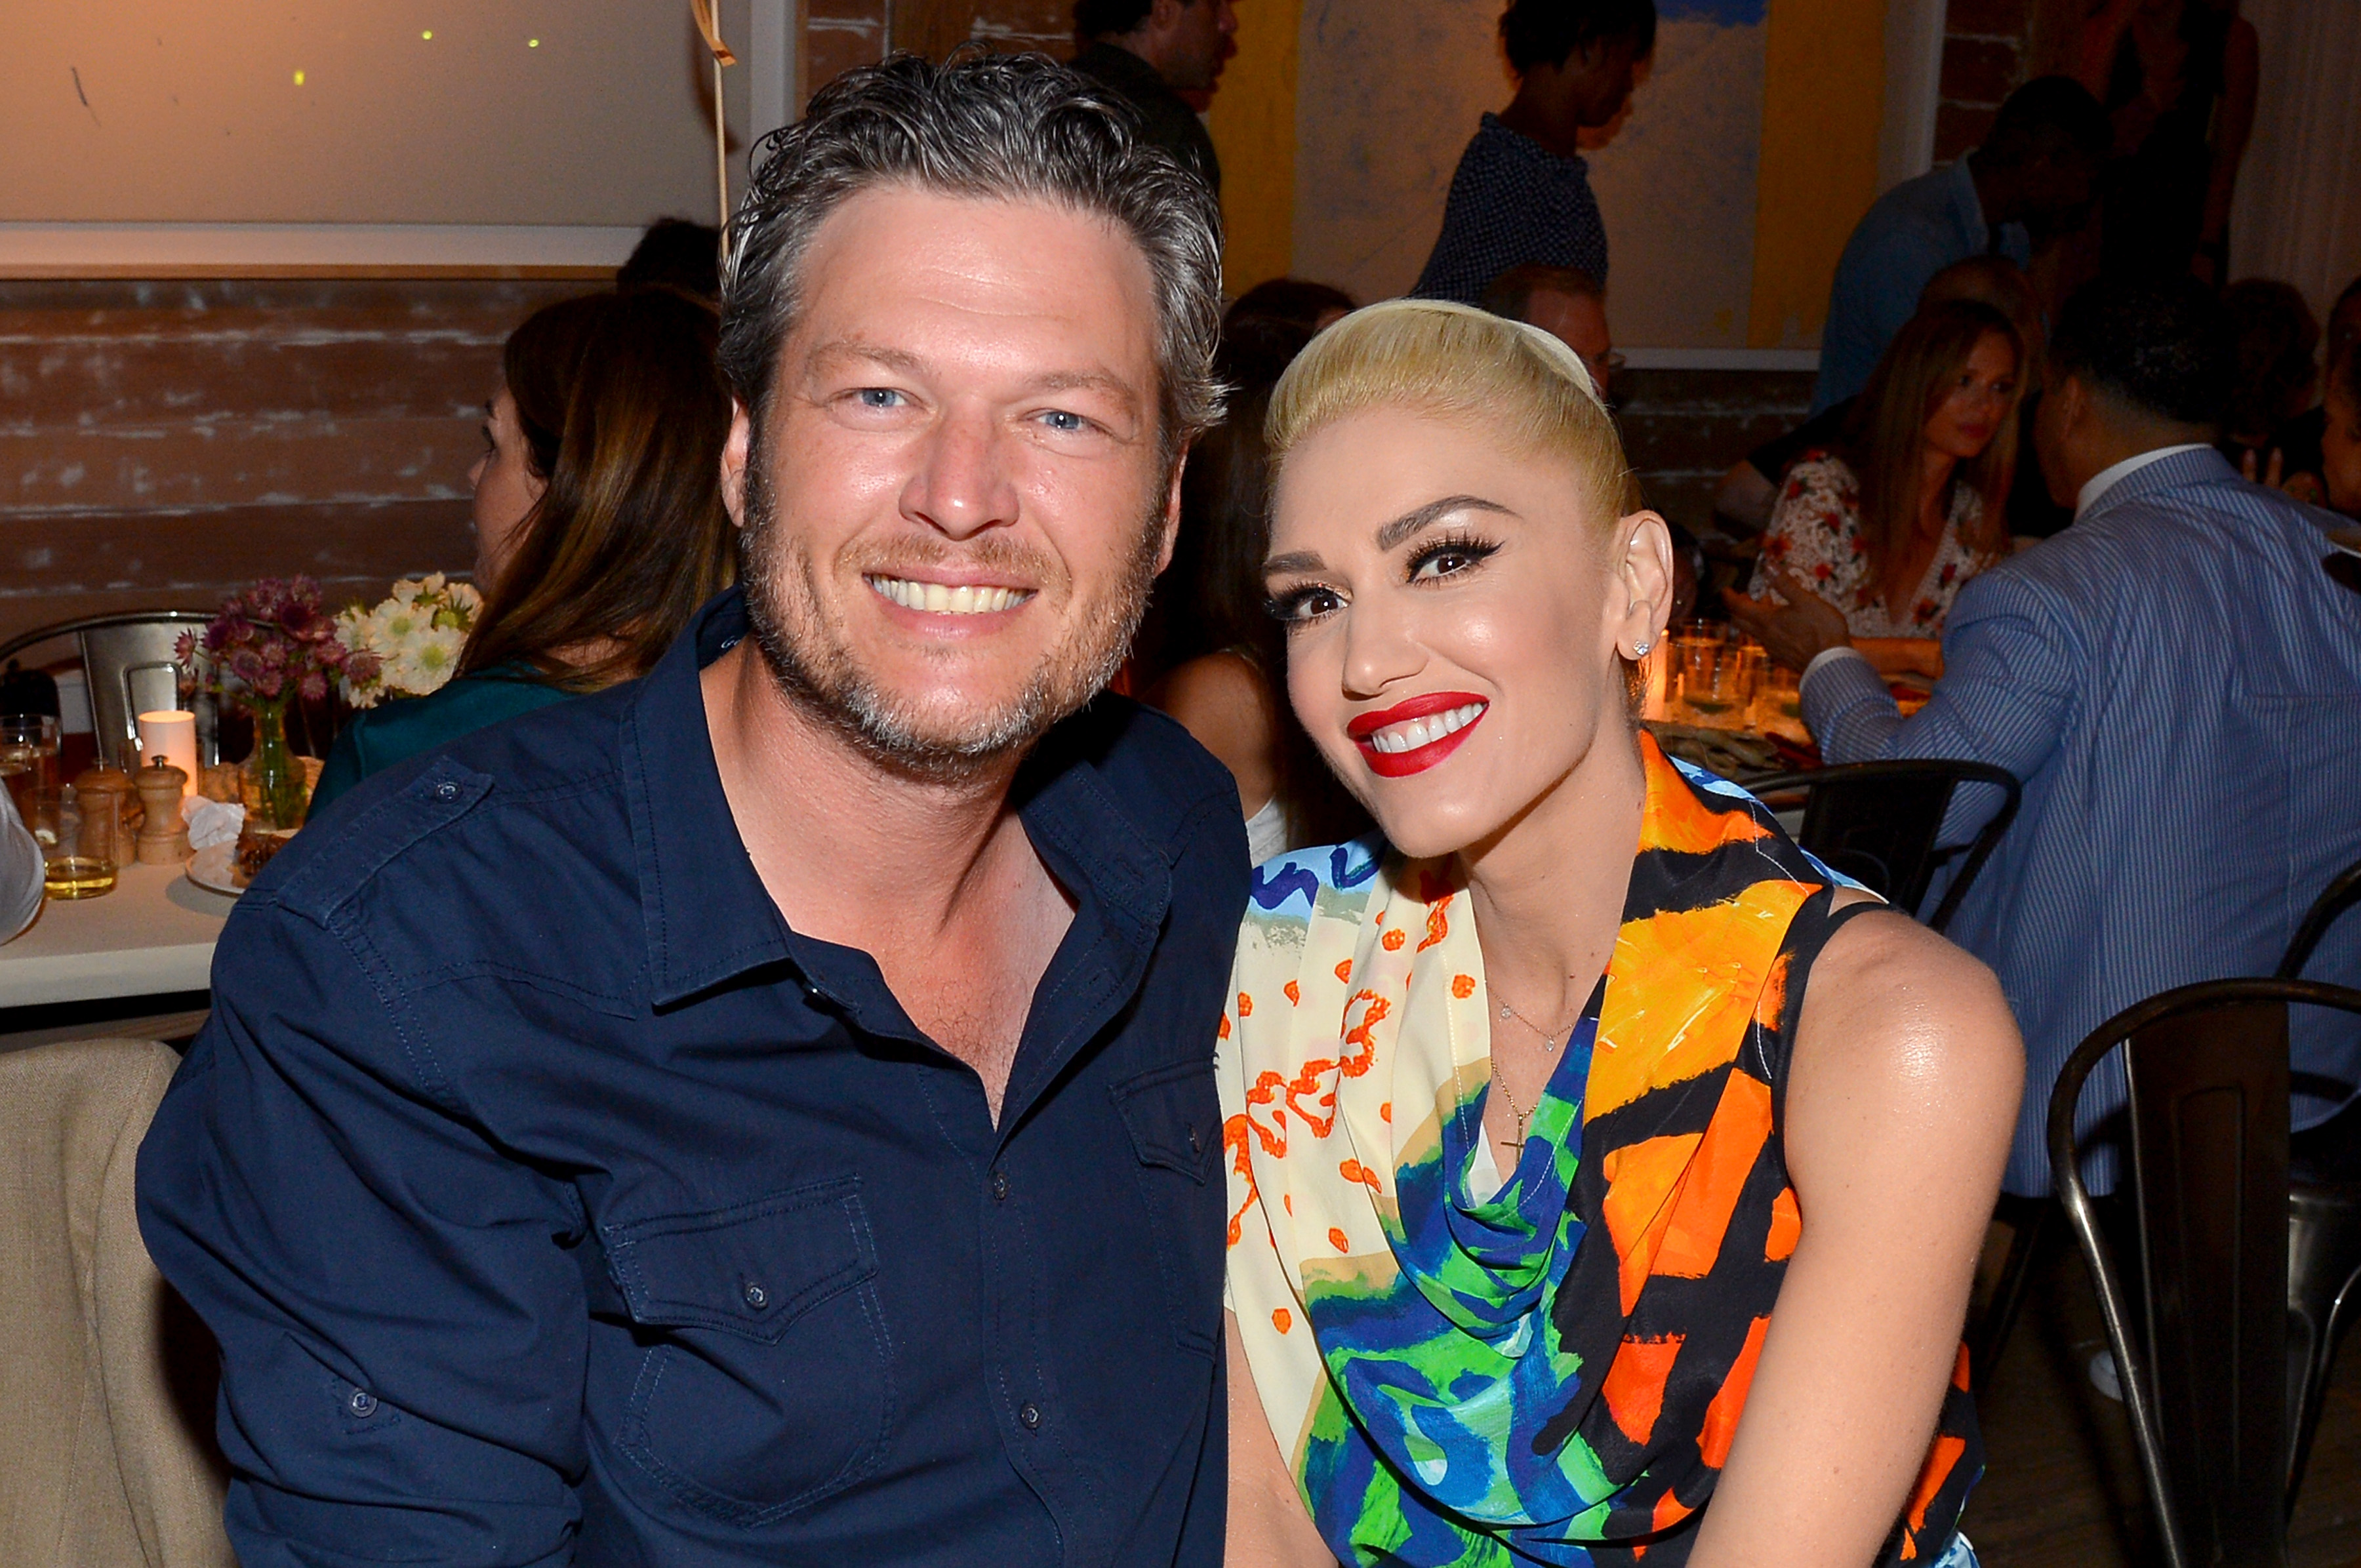 Gwen Stefani and Blake Shelton reportedly put wedding plans on hold for religious reasons